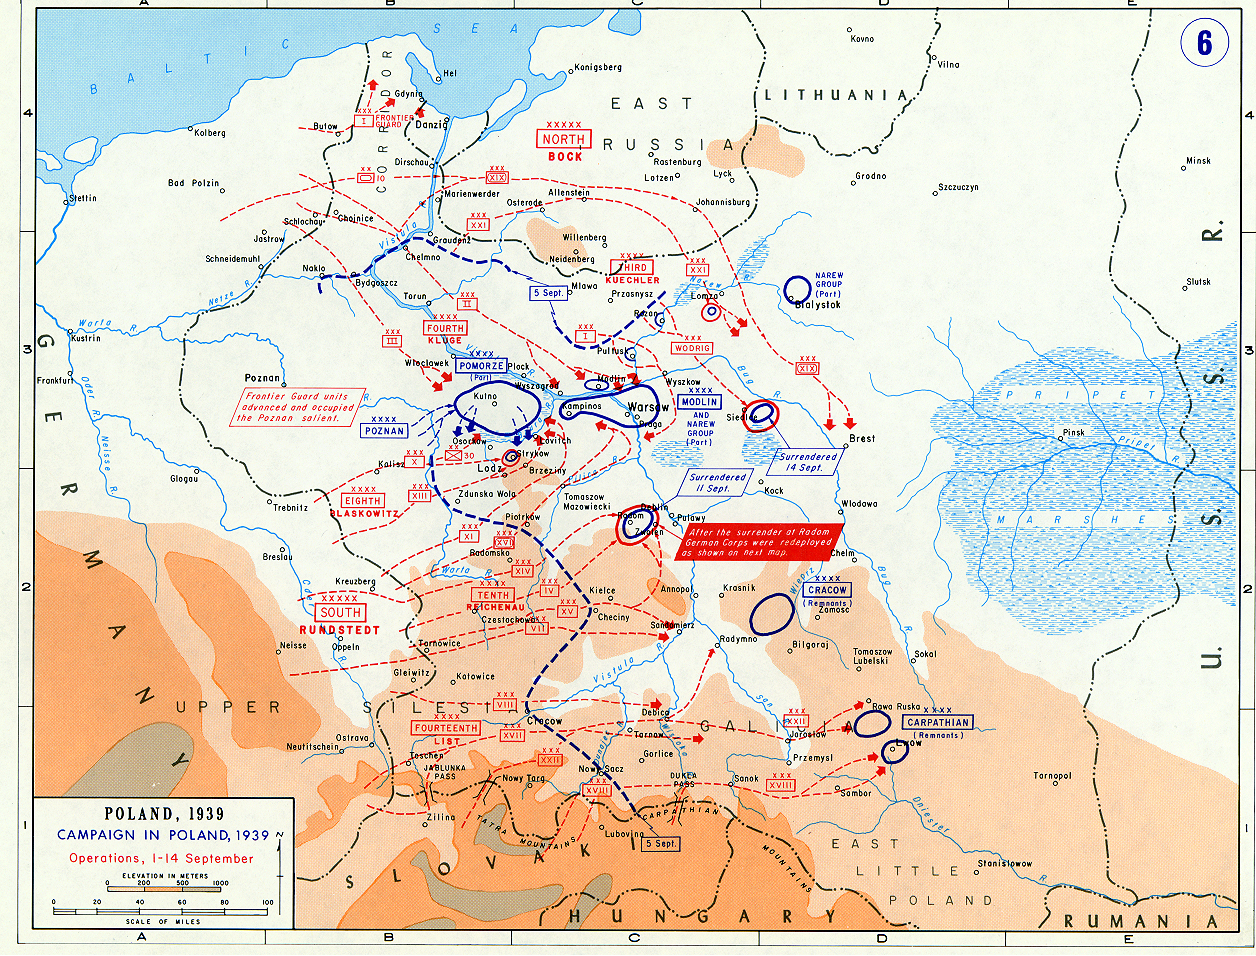 Poland On The World Map.Battle Of Poland Maps Historical Resources About The Second World War